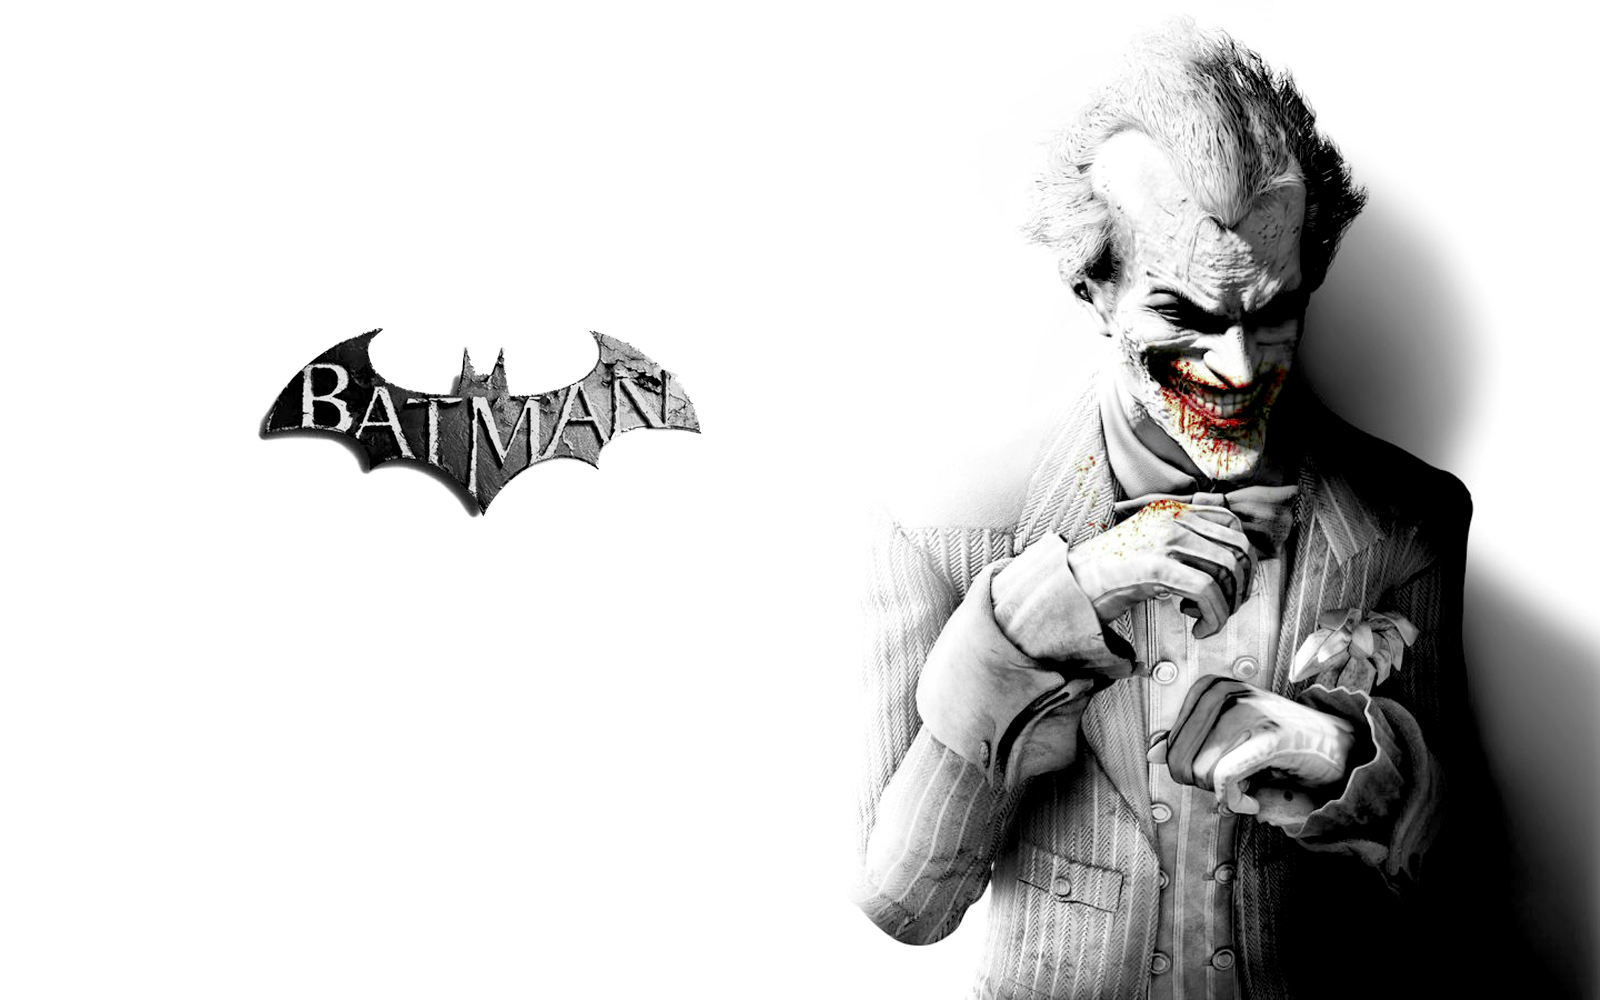 http://1.bp.blogspot.com/-2L10BCmKDqk/T1PCQji63OI/AAAAAAAAAzQ/WnyG40XDmJ4/s1600/Joker_Batman_Archam_City_Game_HD_Wallpaper-gWb.jpg